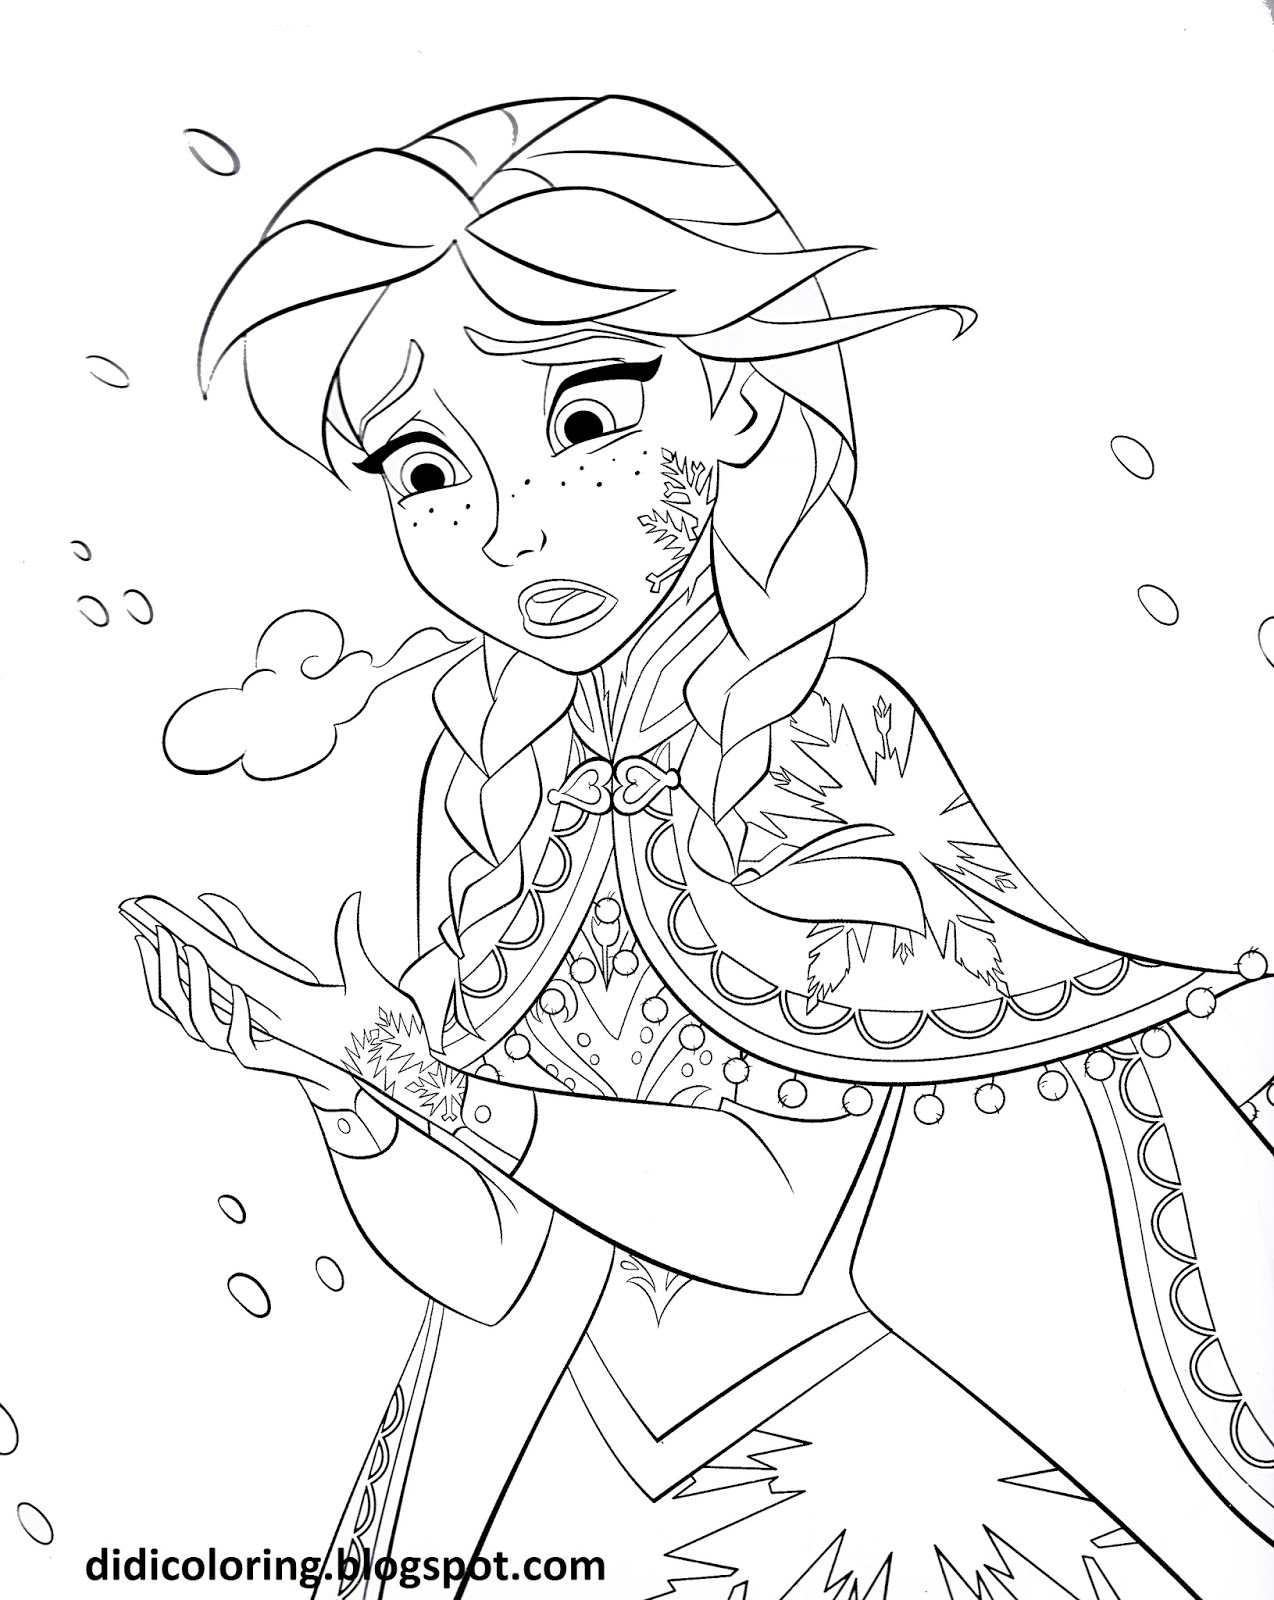 - Didi Coloring Page: Download Princess Anna Walt Disney Characters